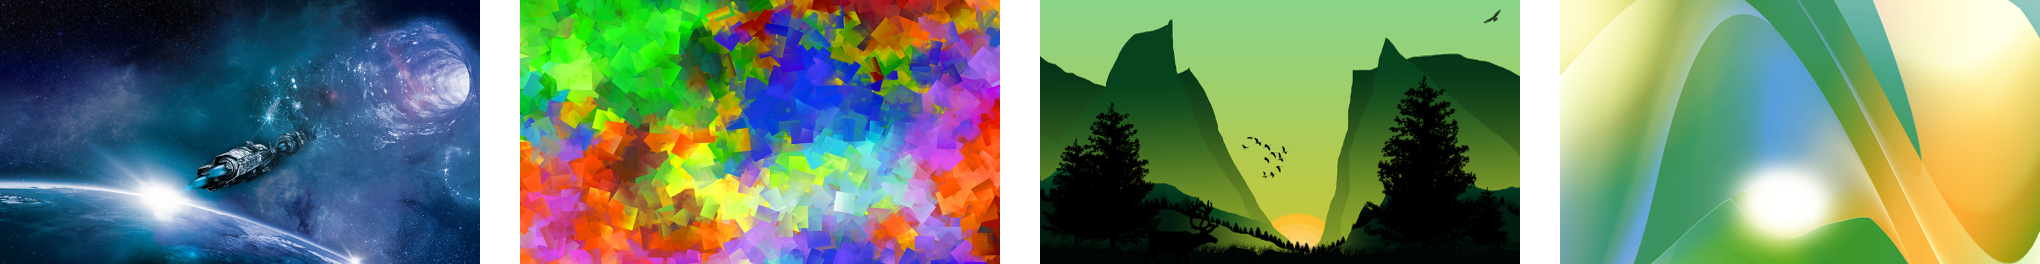 Refresh your Mac Desktop with new wallpapers